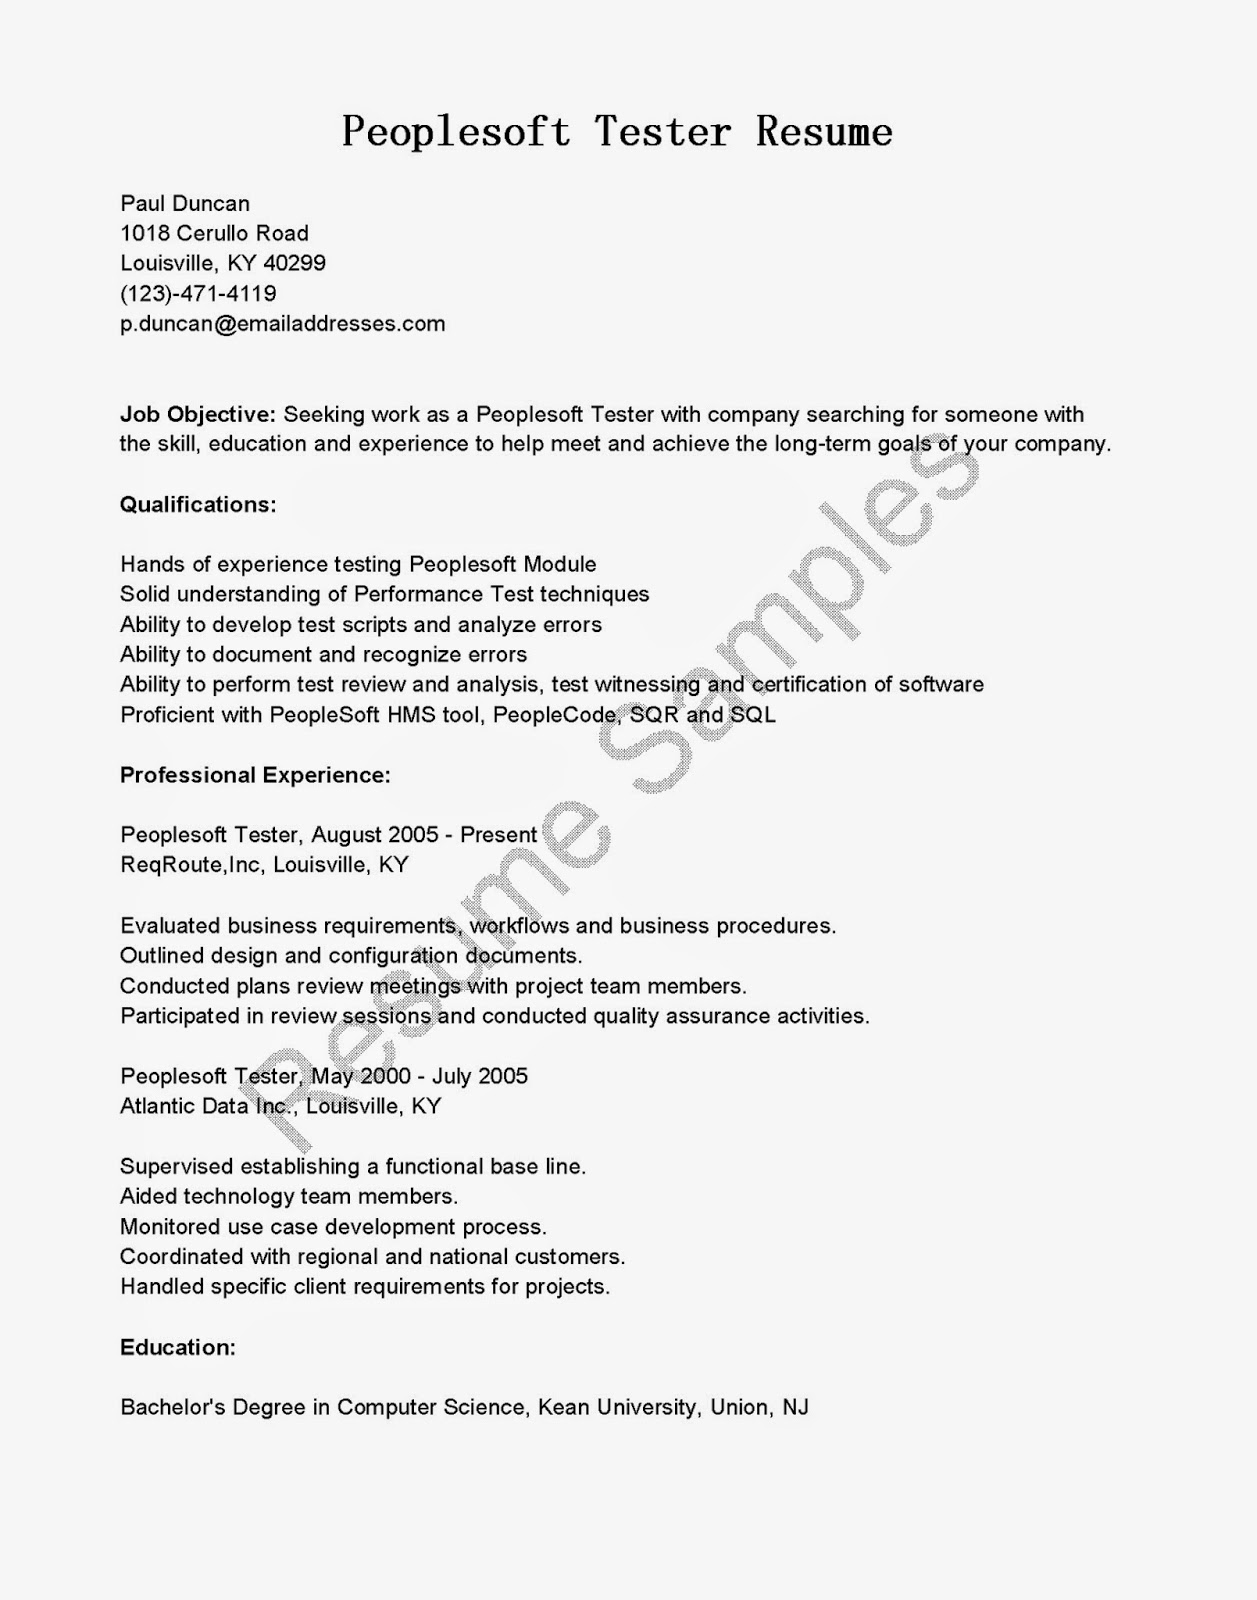 Resume Samples Peoplesoft Tester Resume Sample